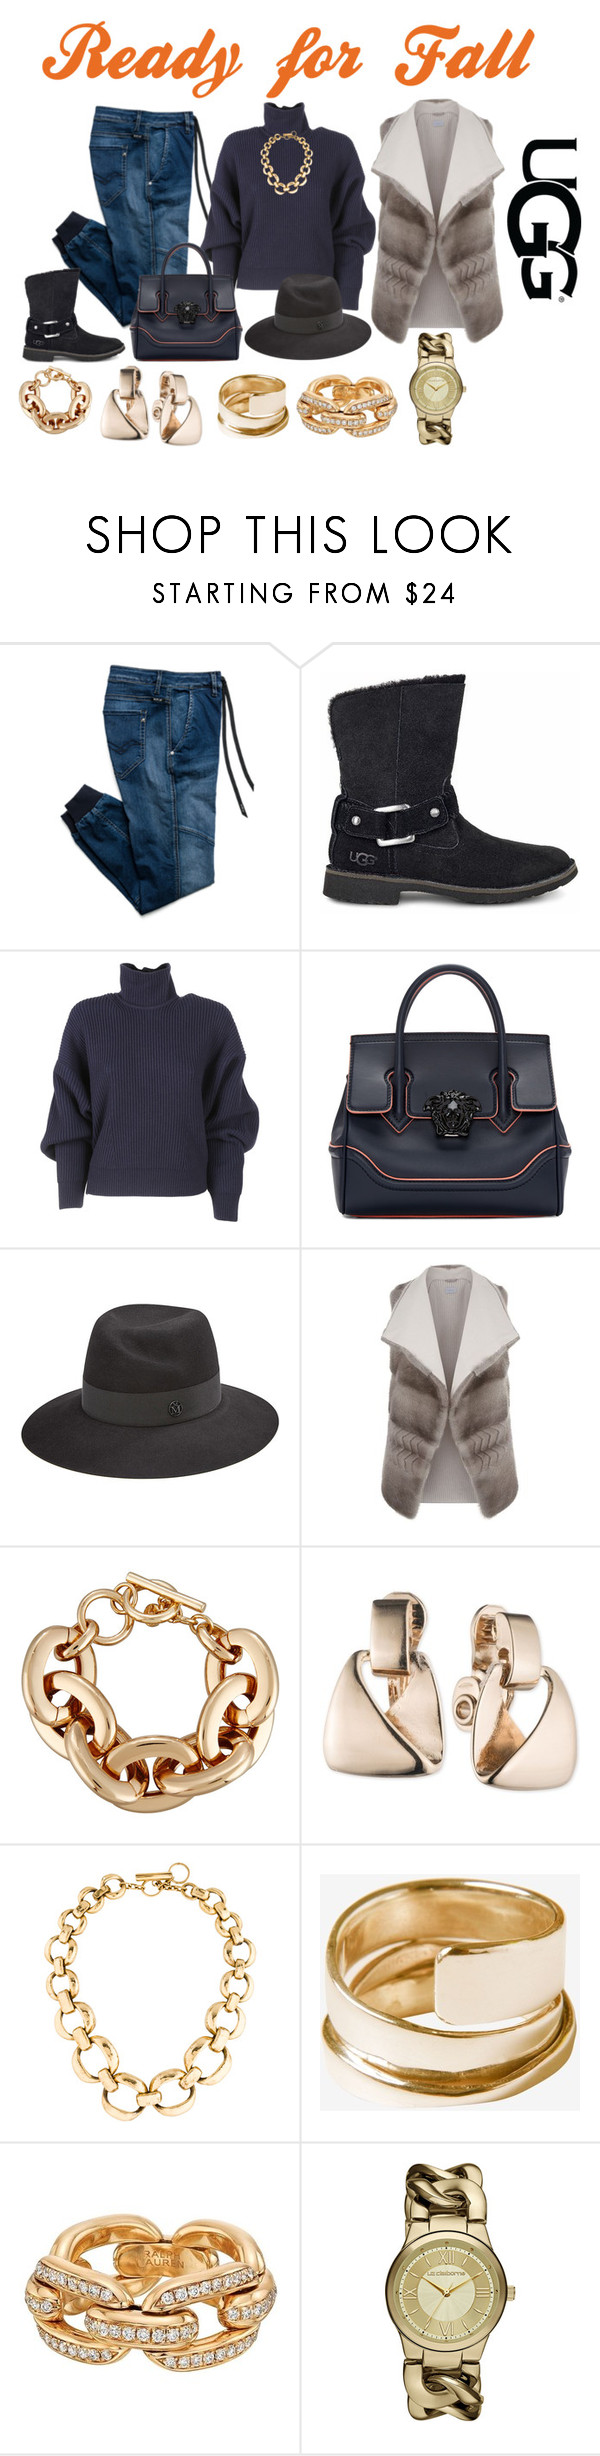 """Ready for Fall"" by theranna on Polyvore featuring Replay, UGG, Balenciaga, Versace, Maison Michel, malo, Lydell NYC, Anne Klein, Vaubel and Toast"